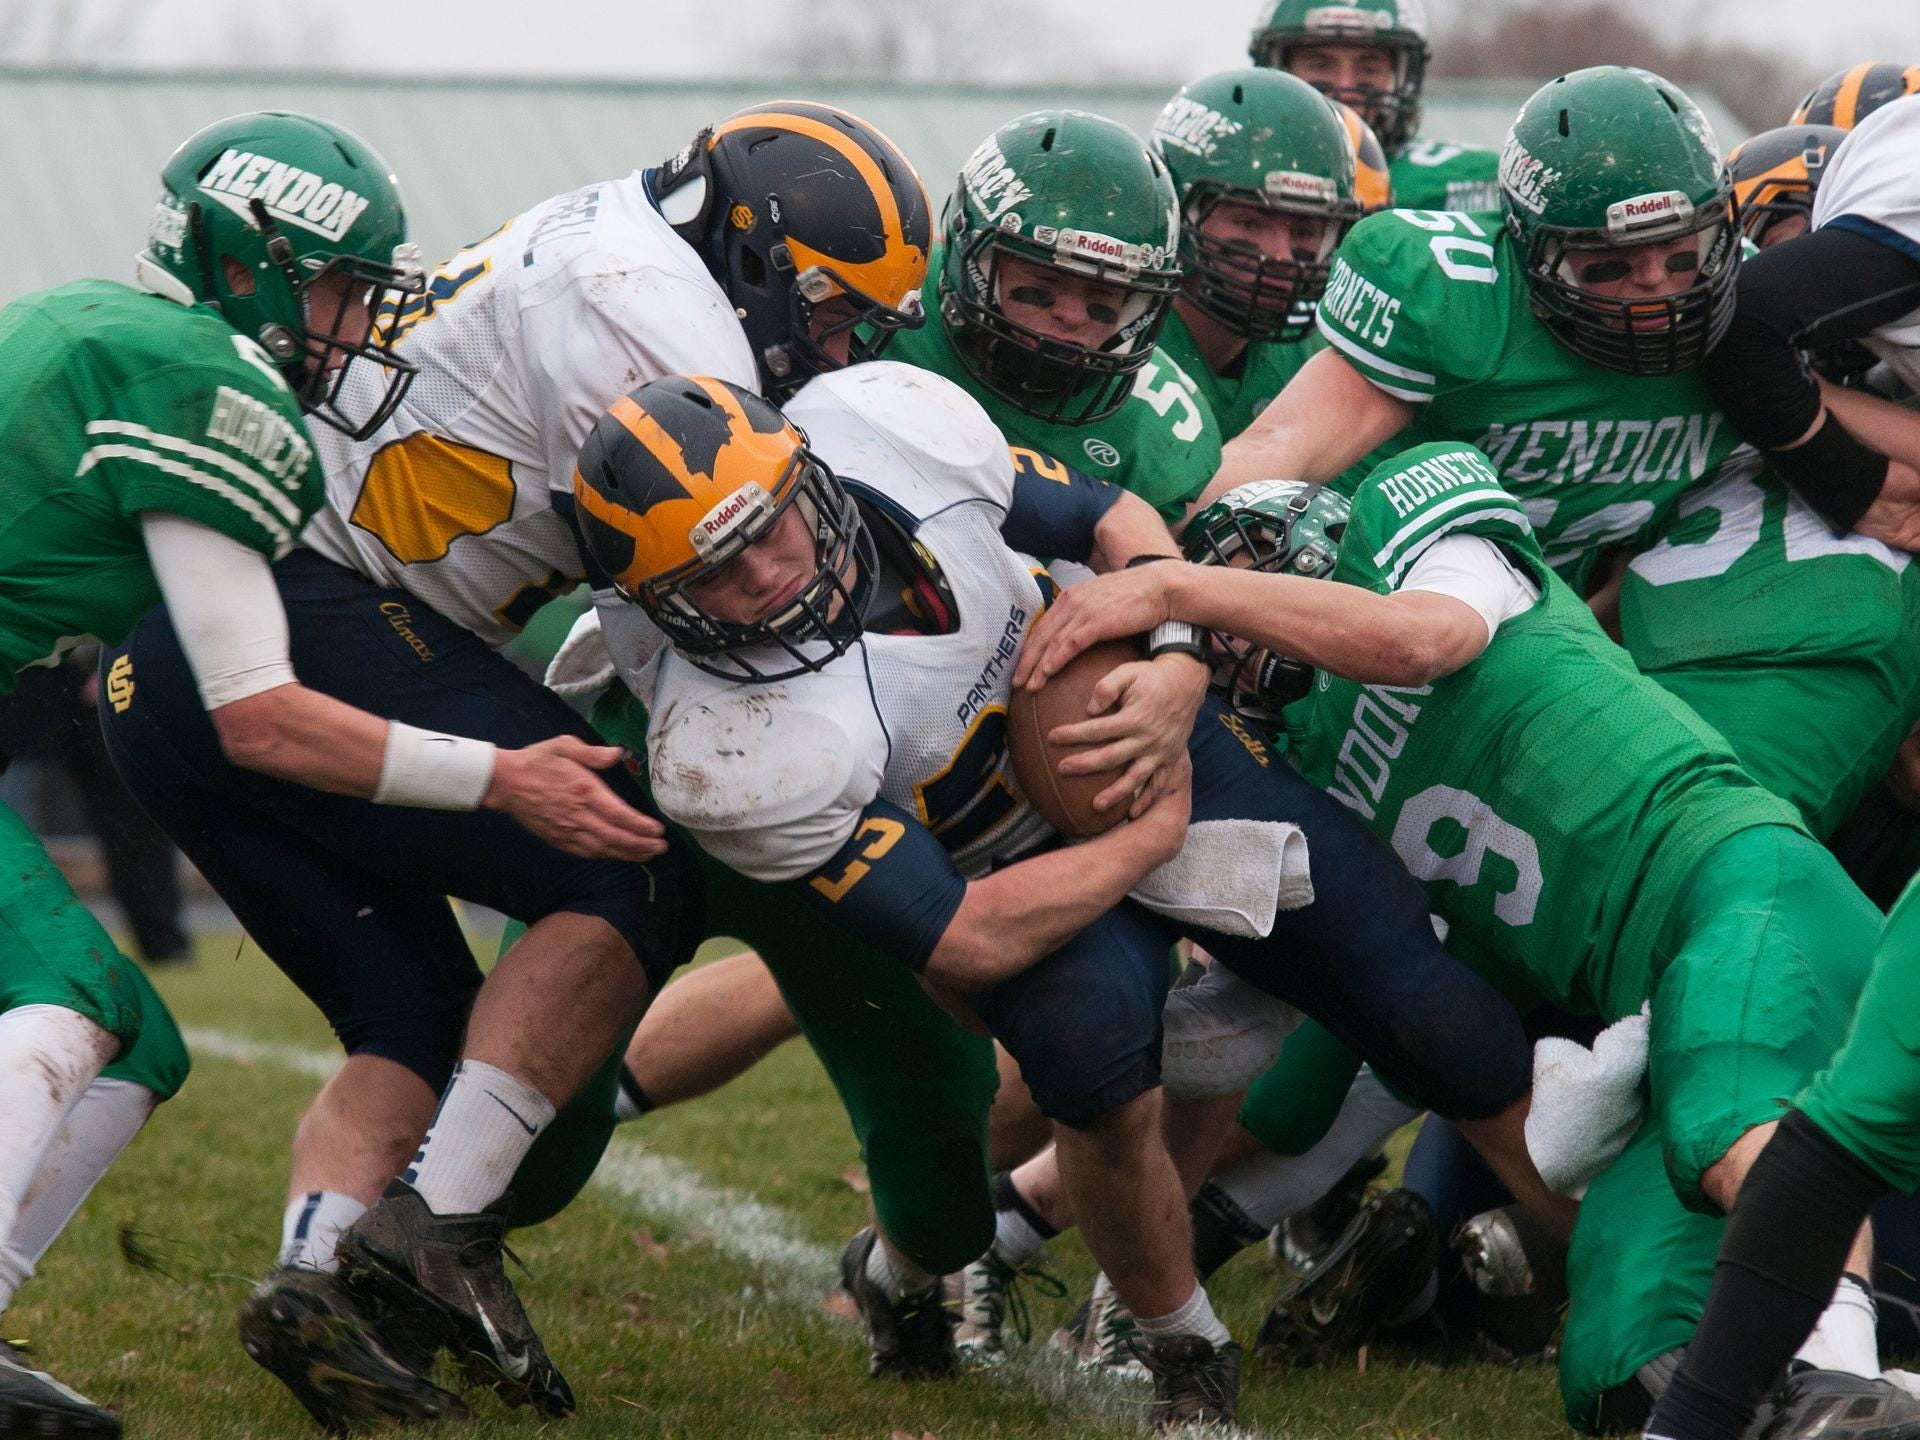 Climax-Scotts once again finished first in the SCAA standings in 2014 with a 6-0 record, going 8-1 overall.